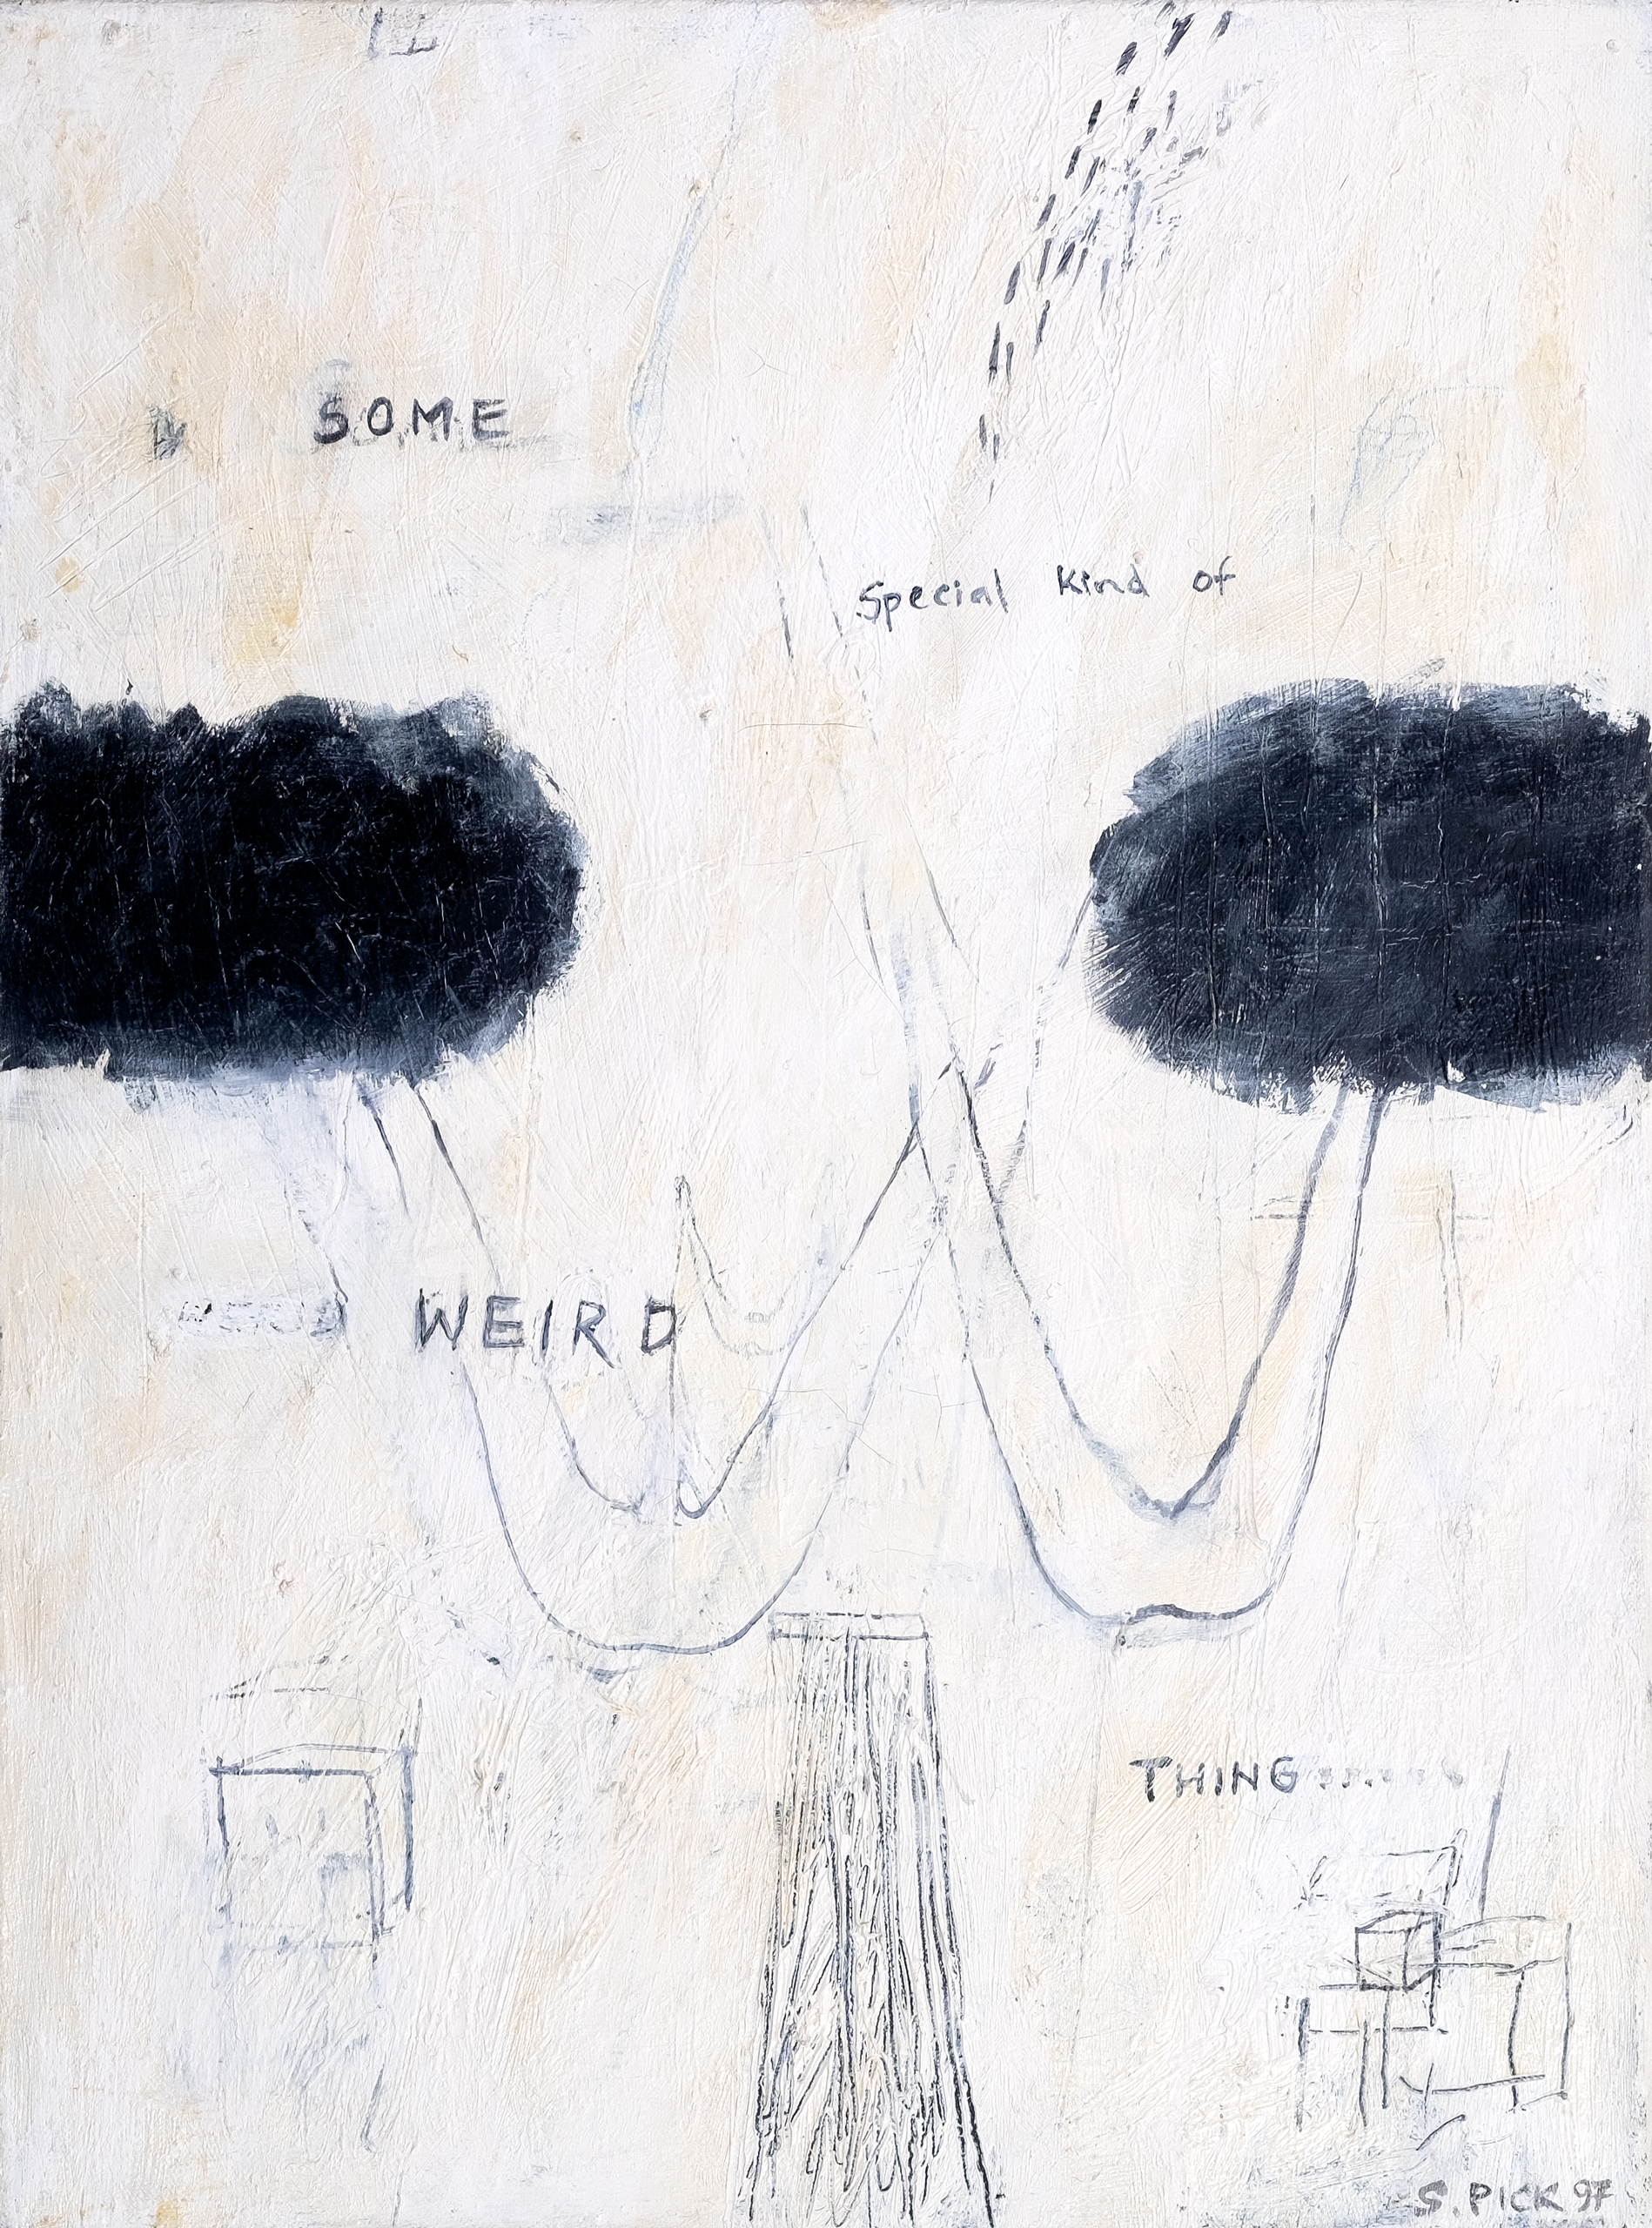 Seraphine Pick, Some Special Kind Of Weird Thing, 1997